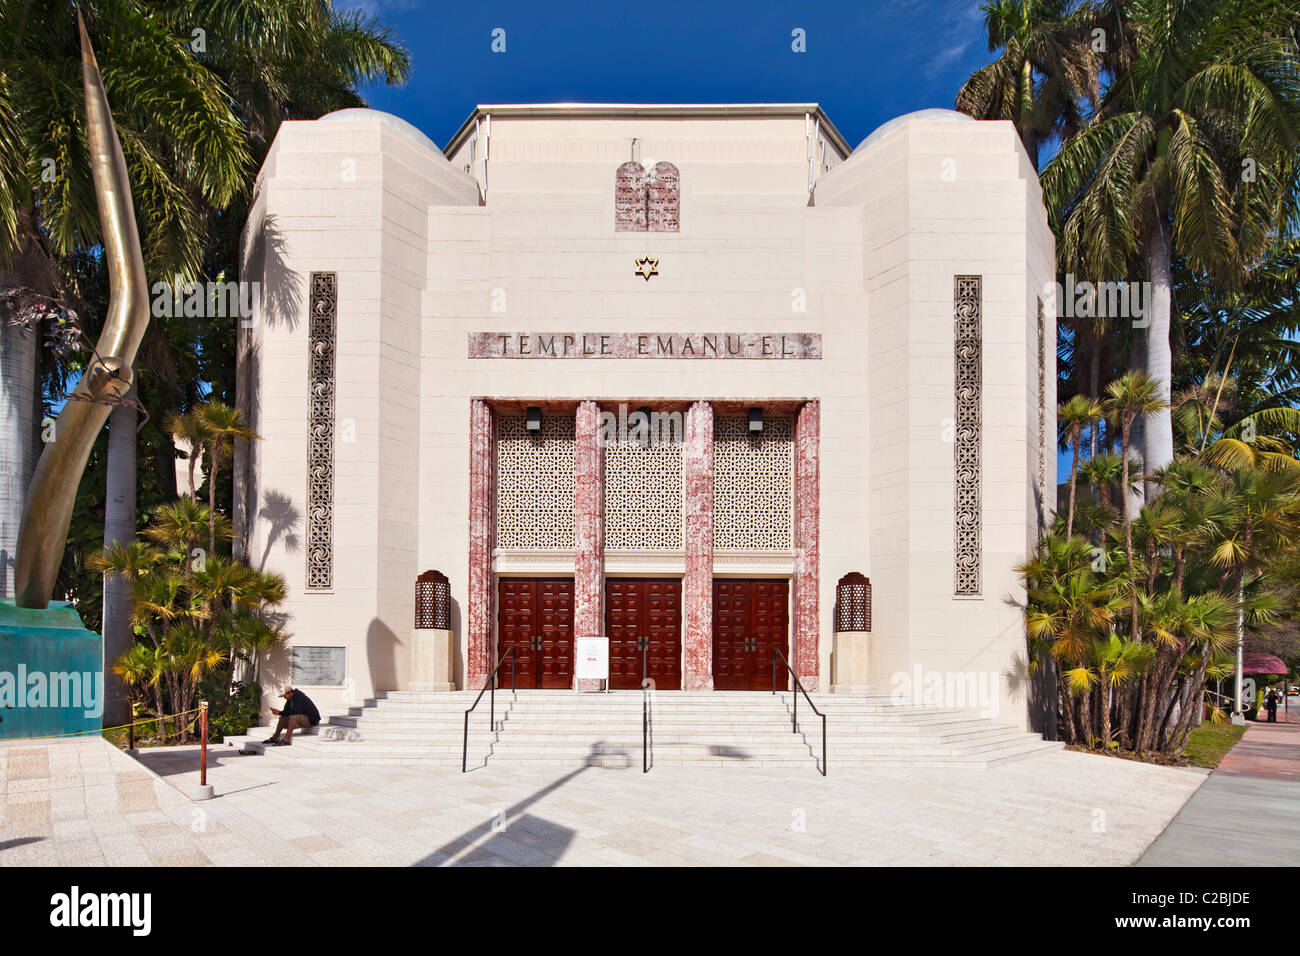 Temple Emanu-El South Beach Synagogue, Miami - Stock Image